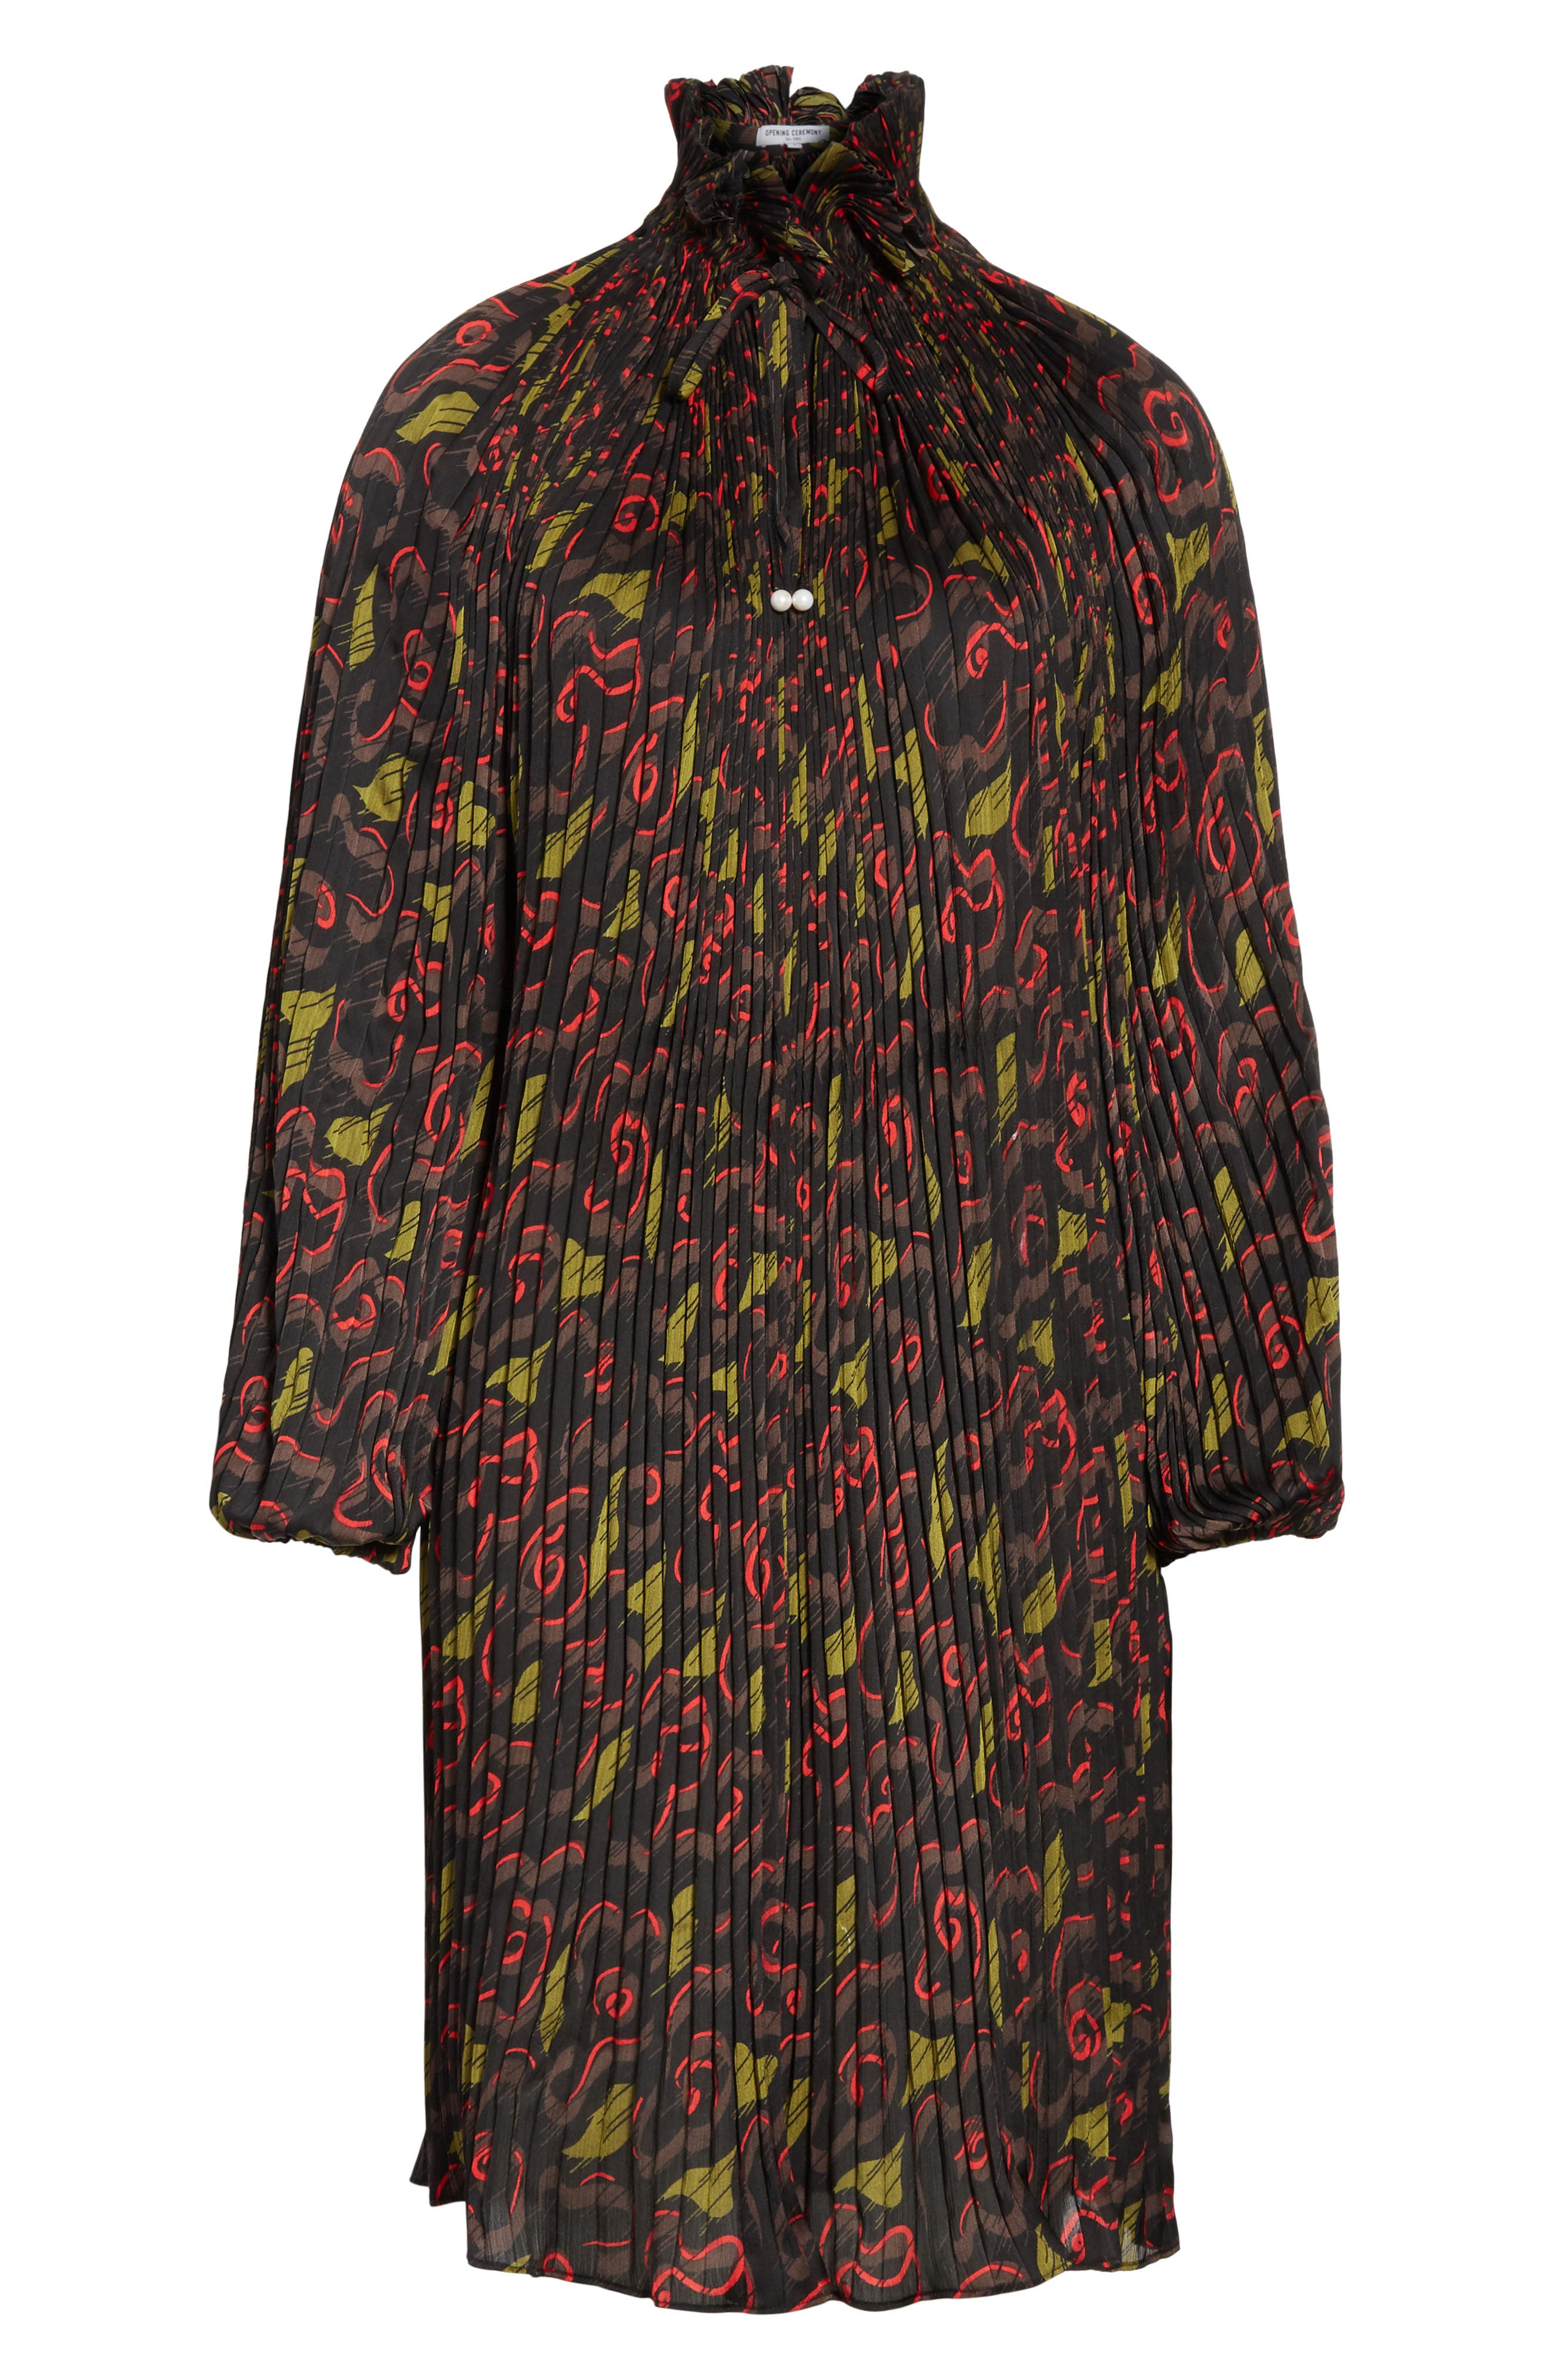 Pleated Floral Dress,                             Alternate thumbnail 6, color,                             Jewel Red Multi